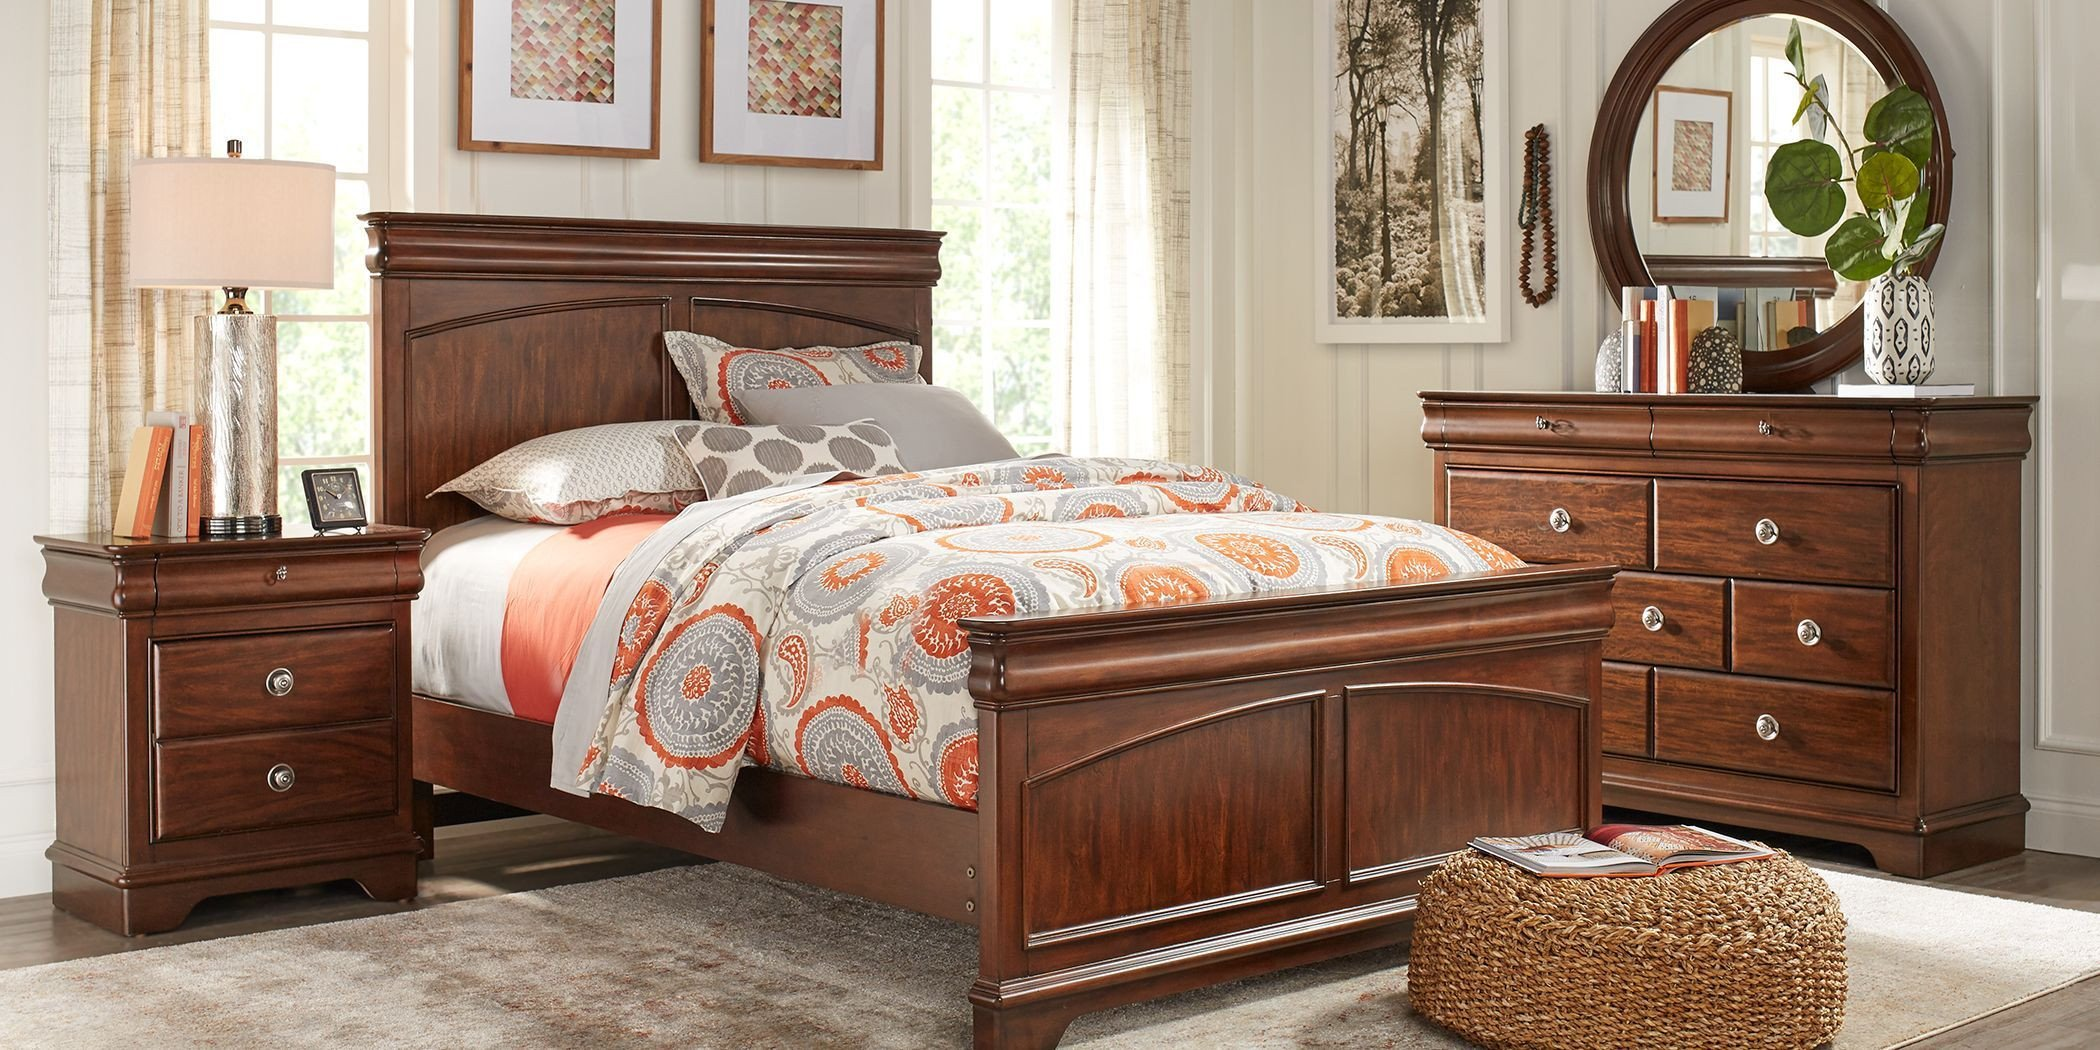 Twin Bed Bedroom Set Luxury Kids Oberon Cherry 5 Pc Twin Panel Bedroom In 2019